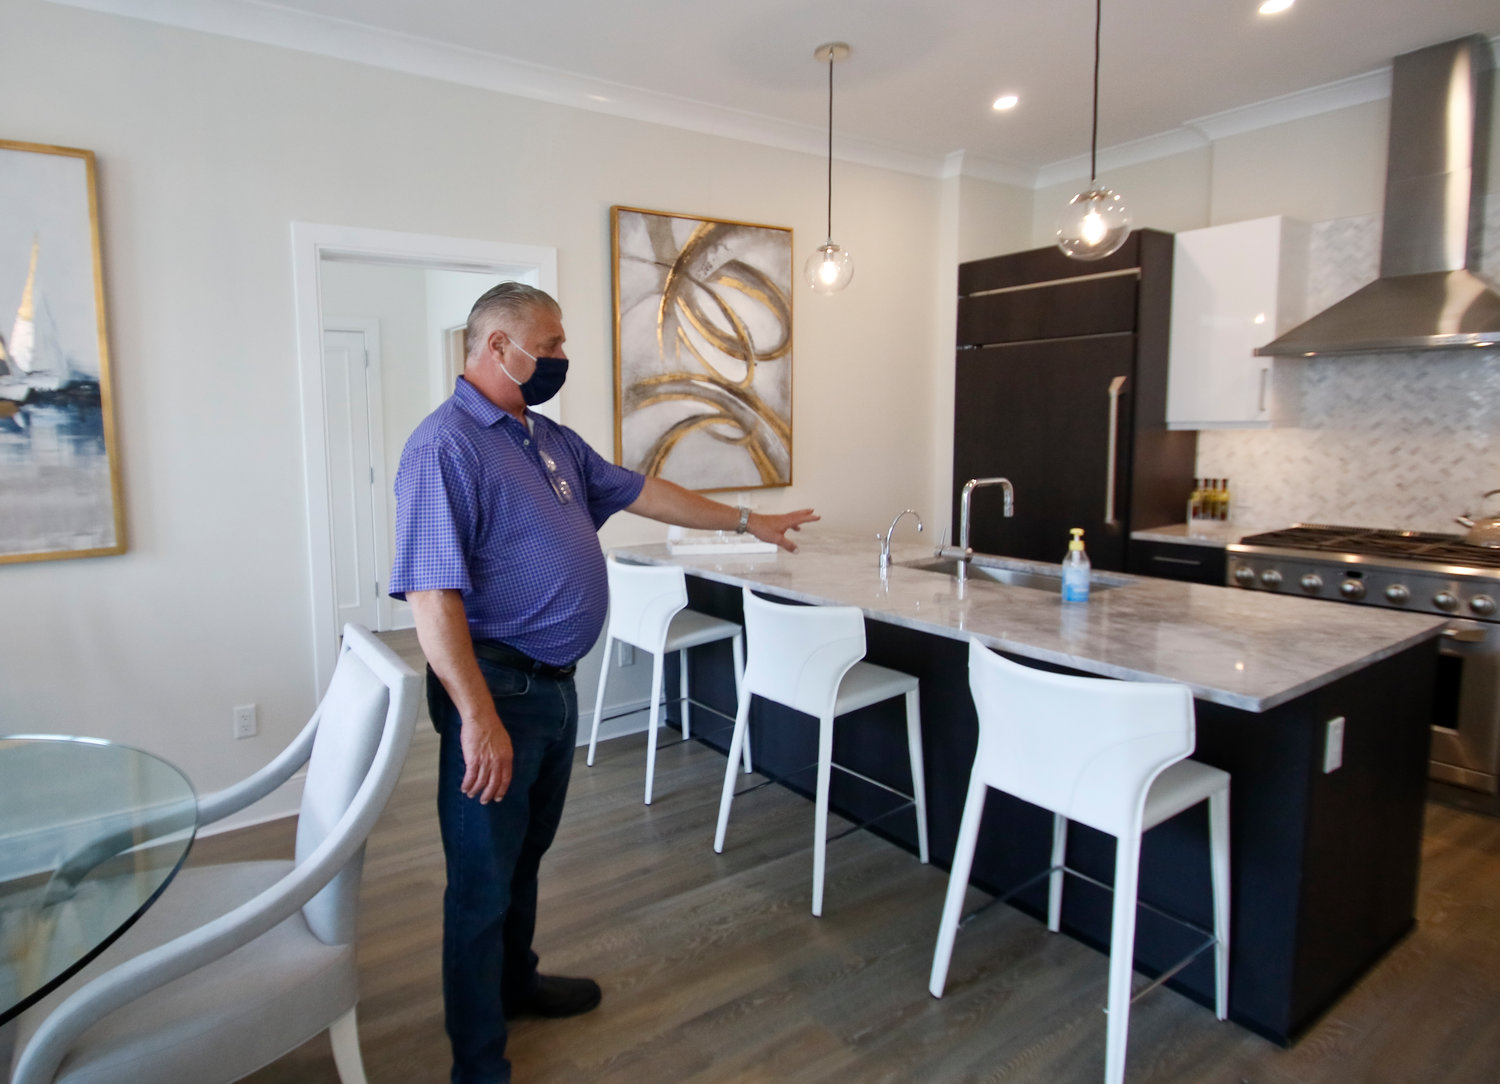 Joe Graziose provided tour of a 2-bedroom, ½ bathroom suite in The Beacon.